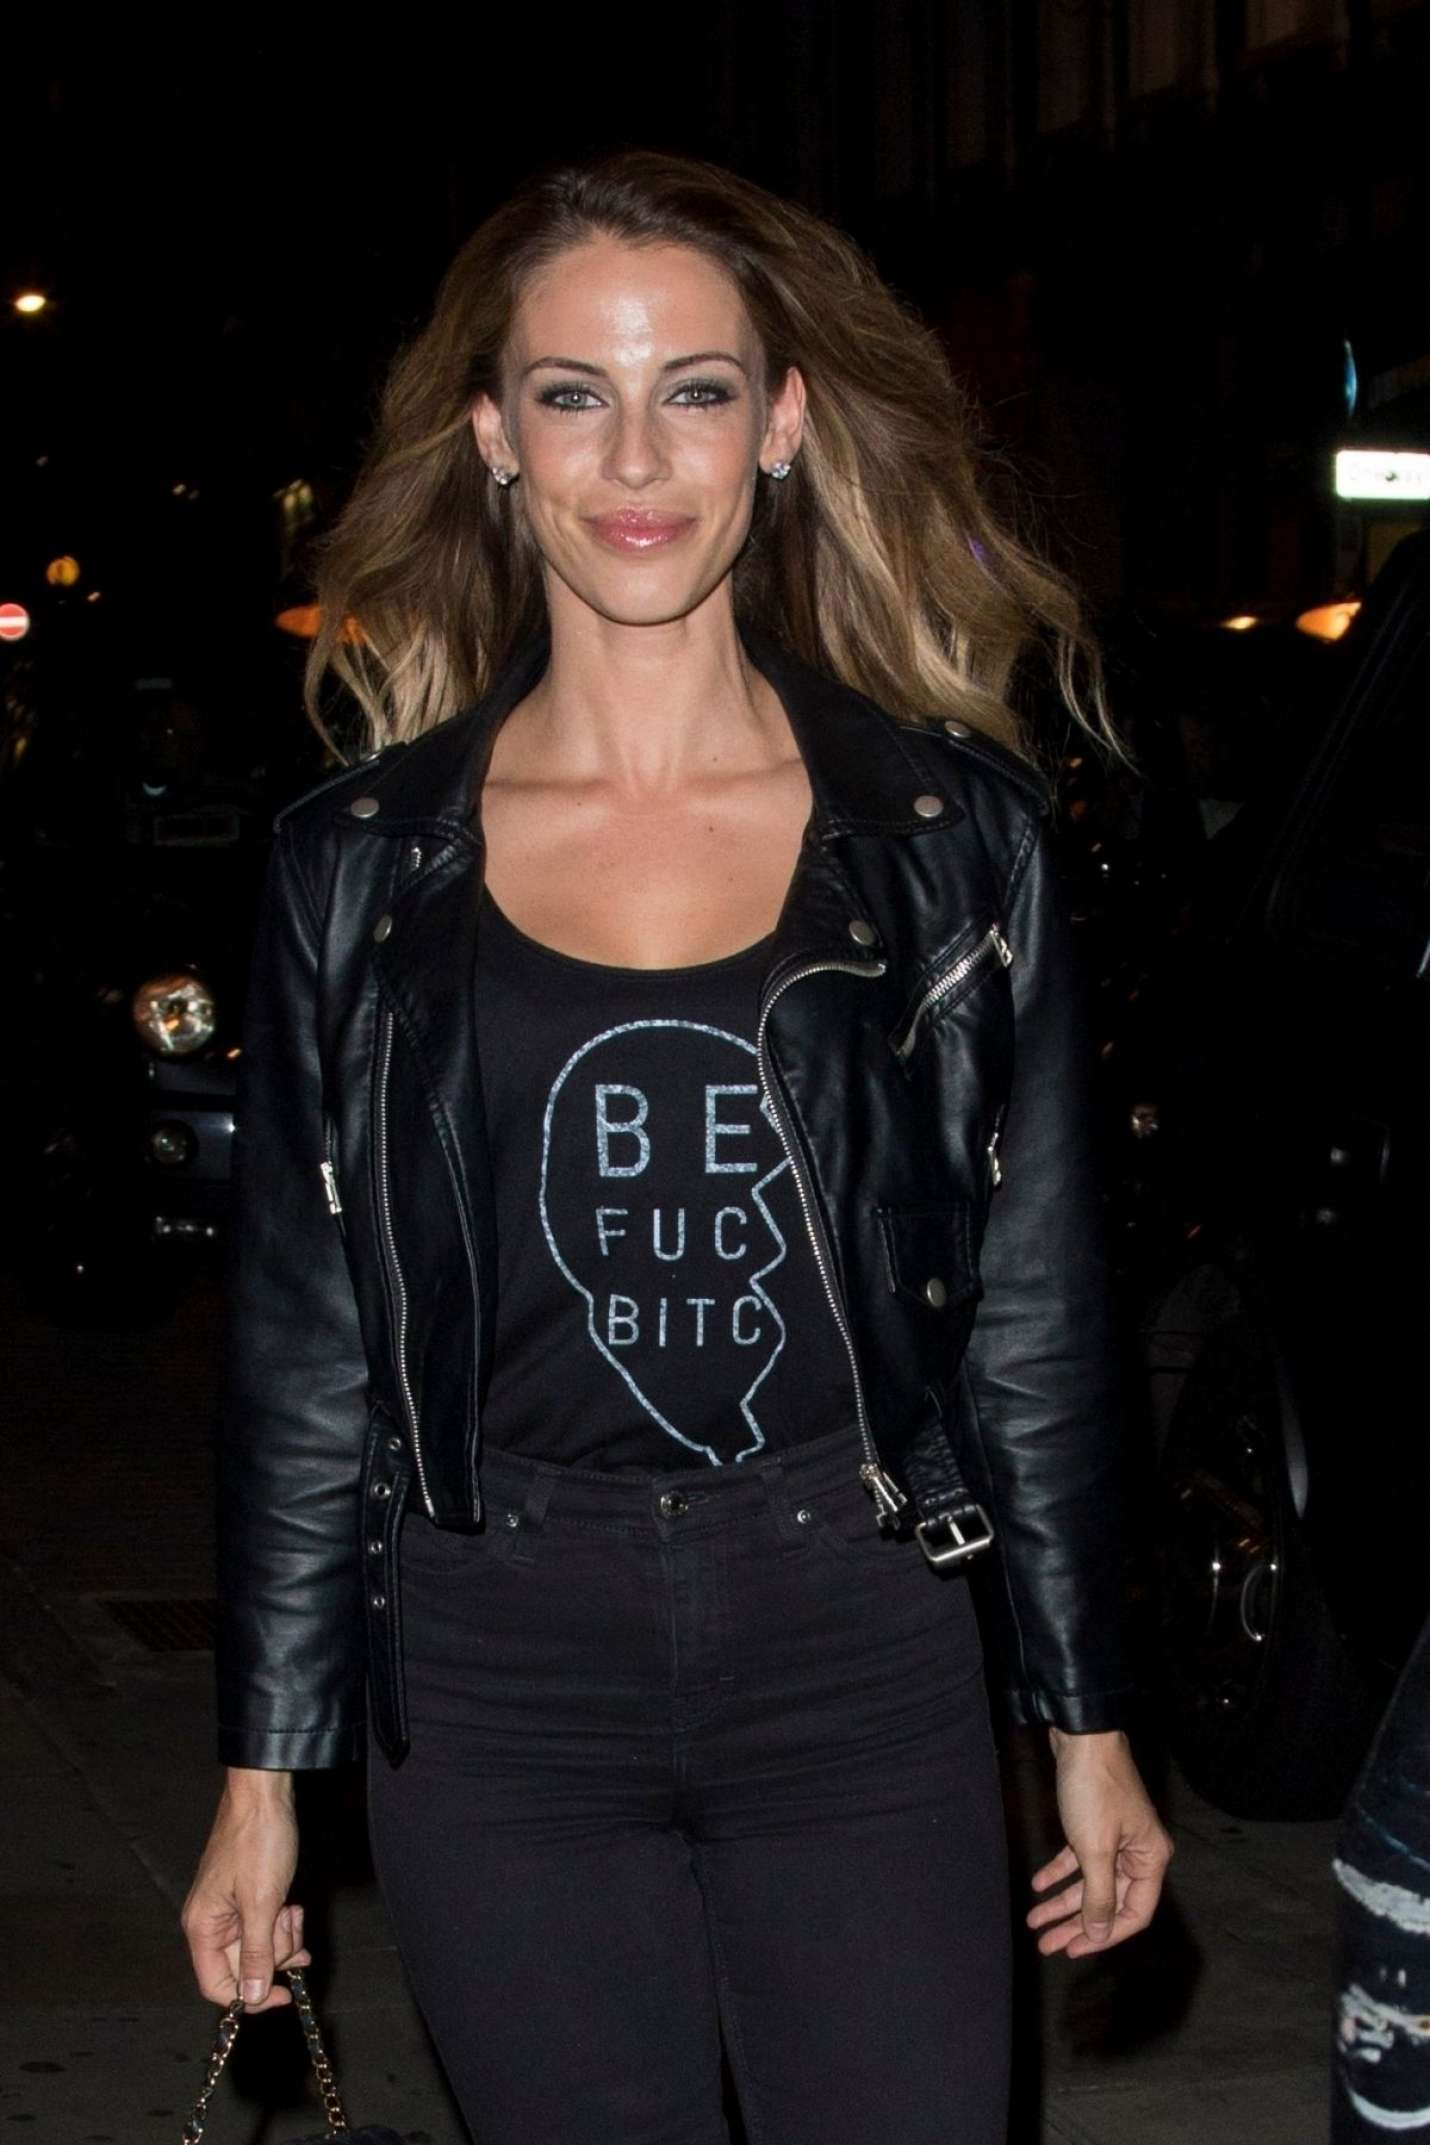 Jessica lowndes arriving at bunga bunga in covent garden in london naked (33 photo), Is a cute Celebrity fotos